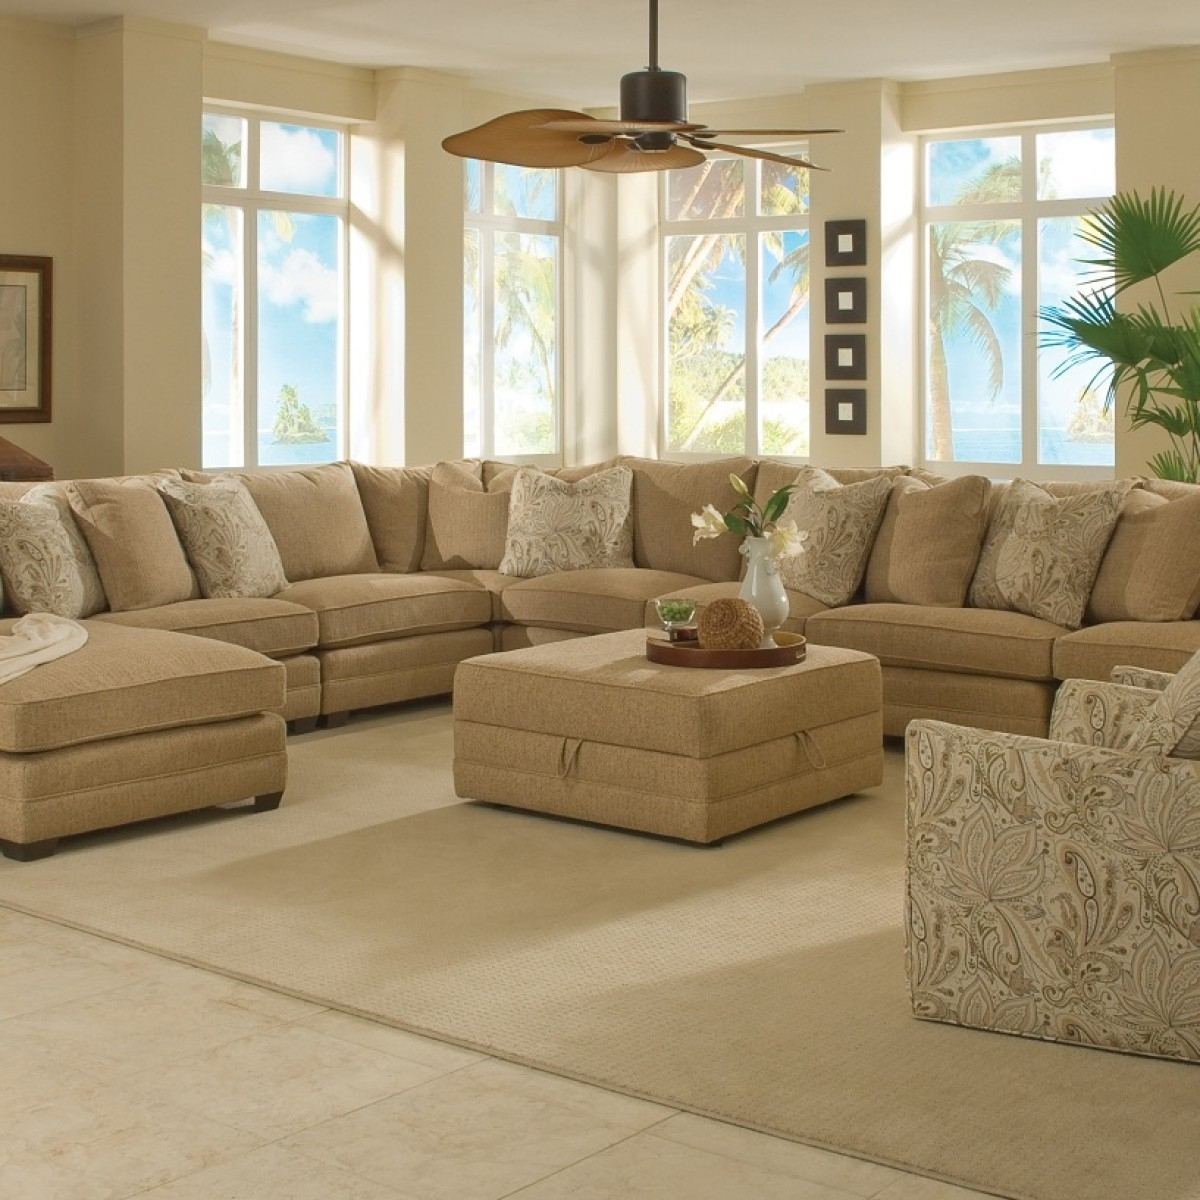 Factors To Consider Before Buying An Extra Large Sectional Sofa Within Latest Austin Sectional Sofas (View 8 of 20)